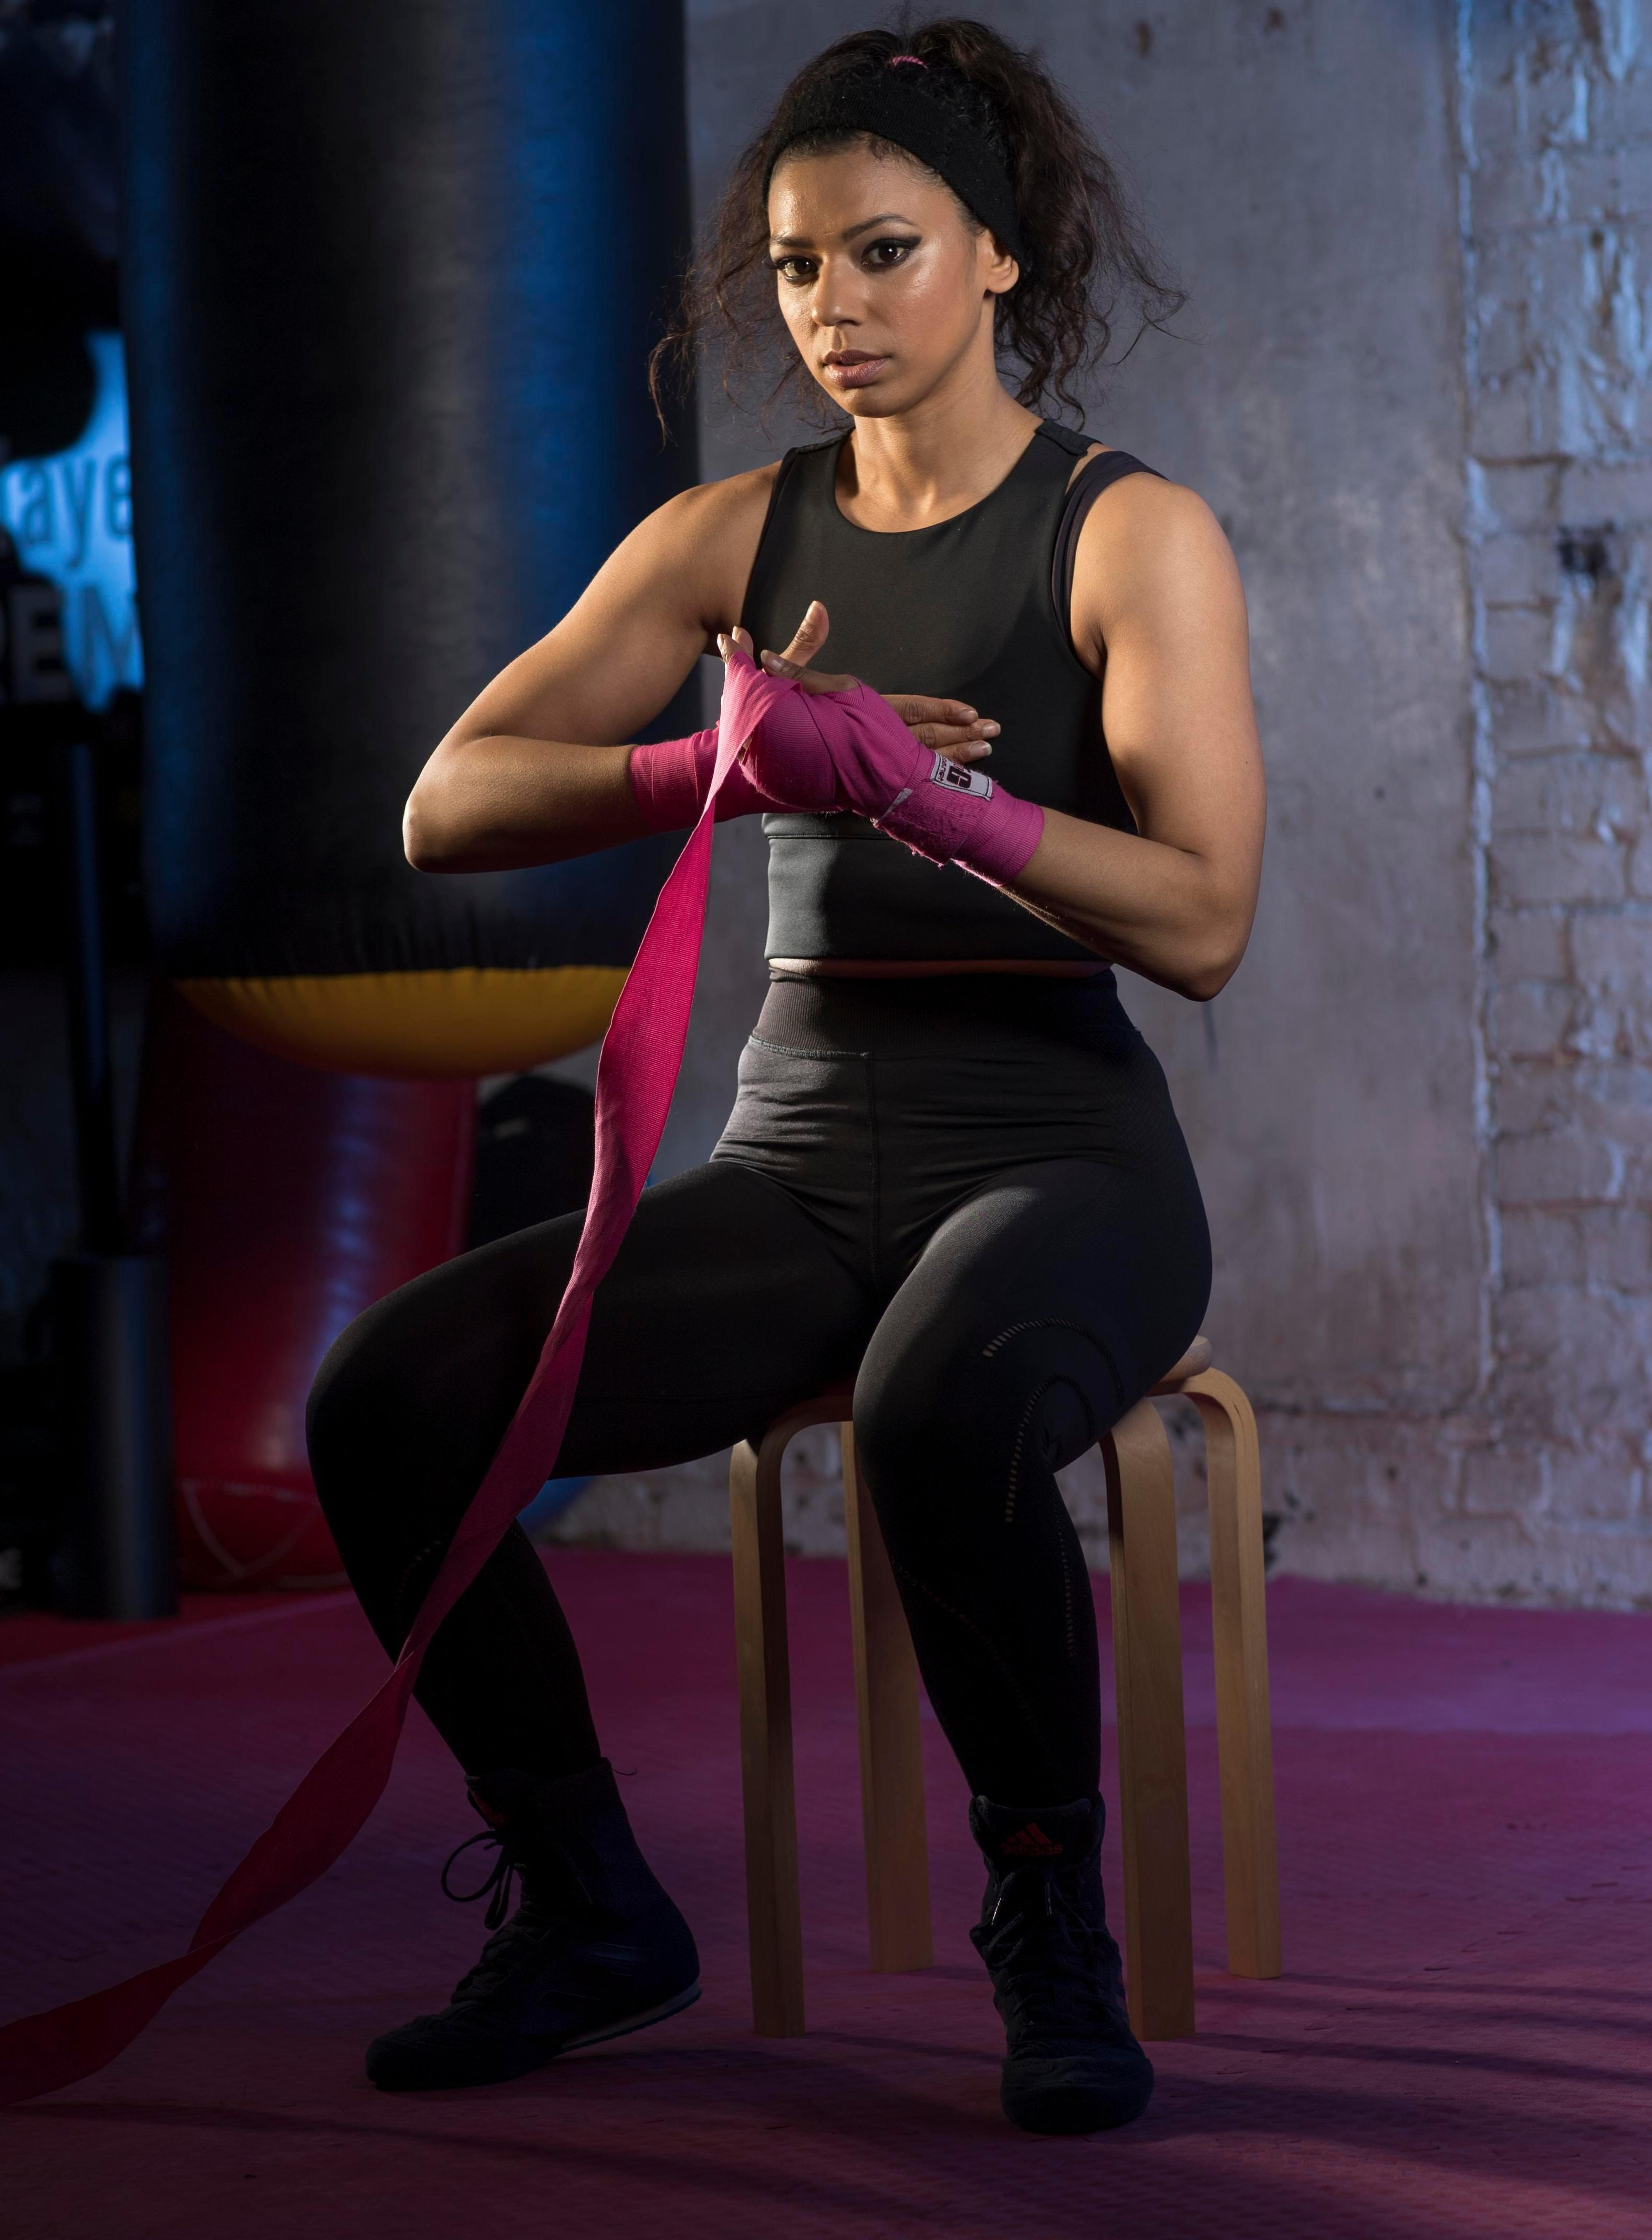 Ruqsana Begum became a world champ at kickboxing and has now switched to orthodox boxing